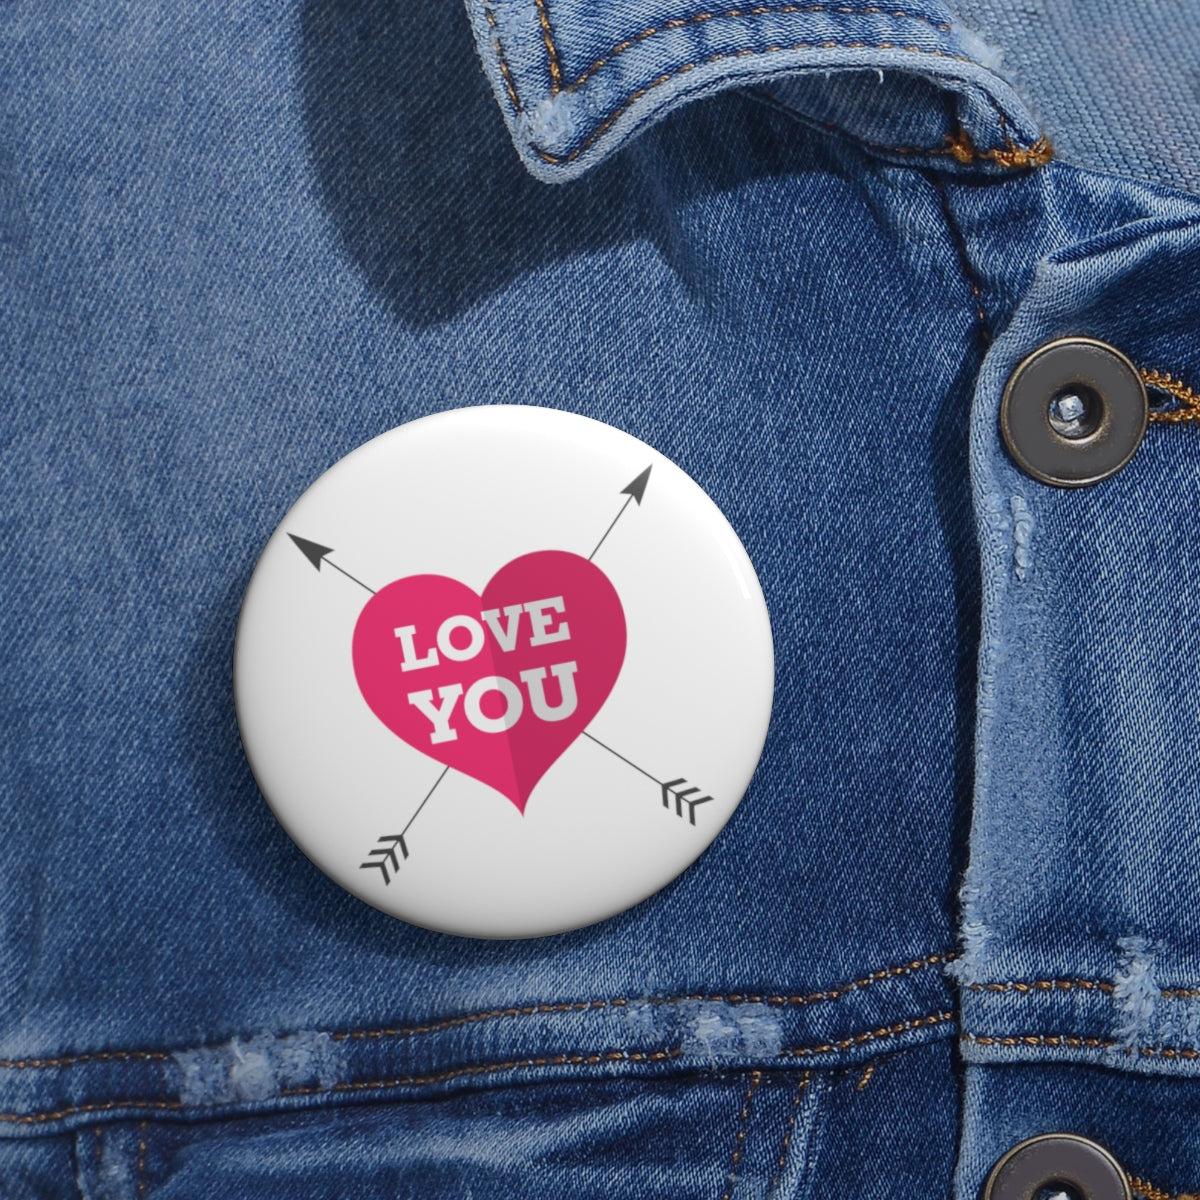 I love you arrows Pin Button